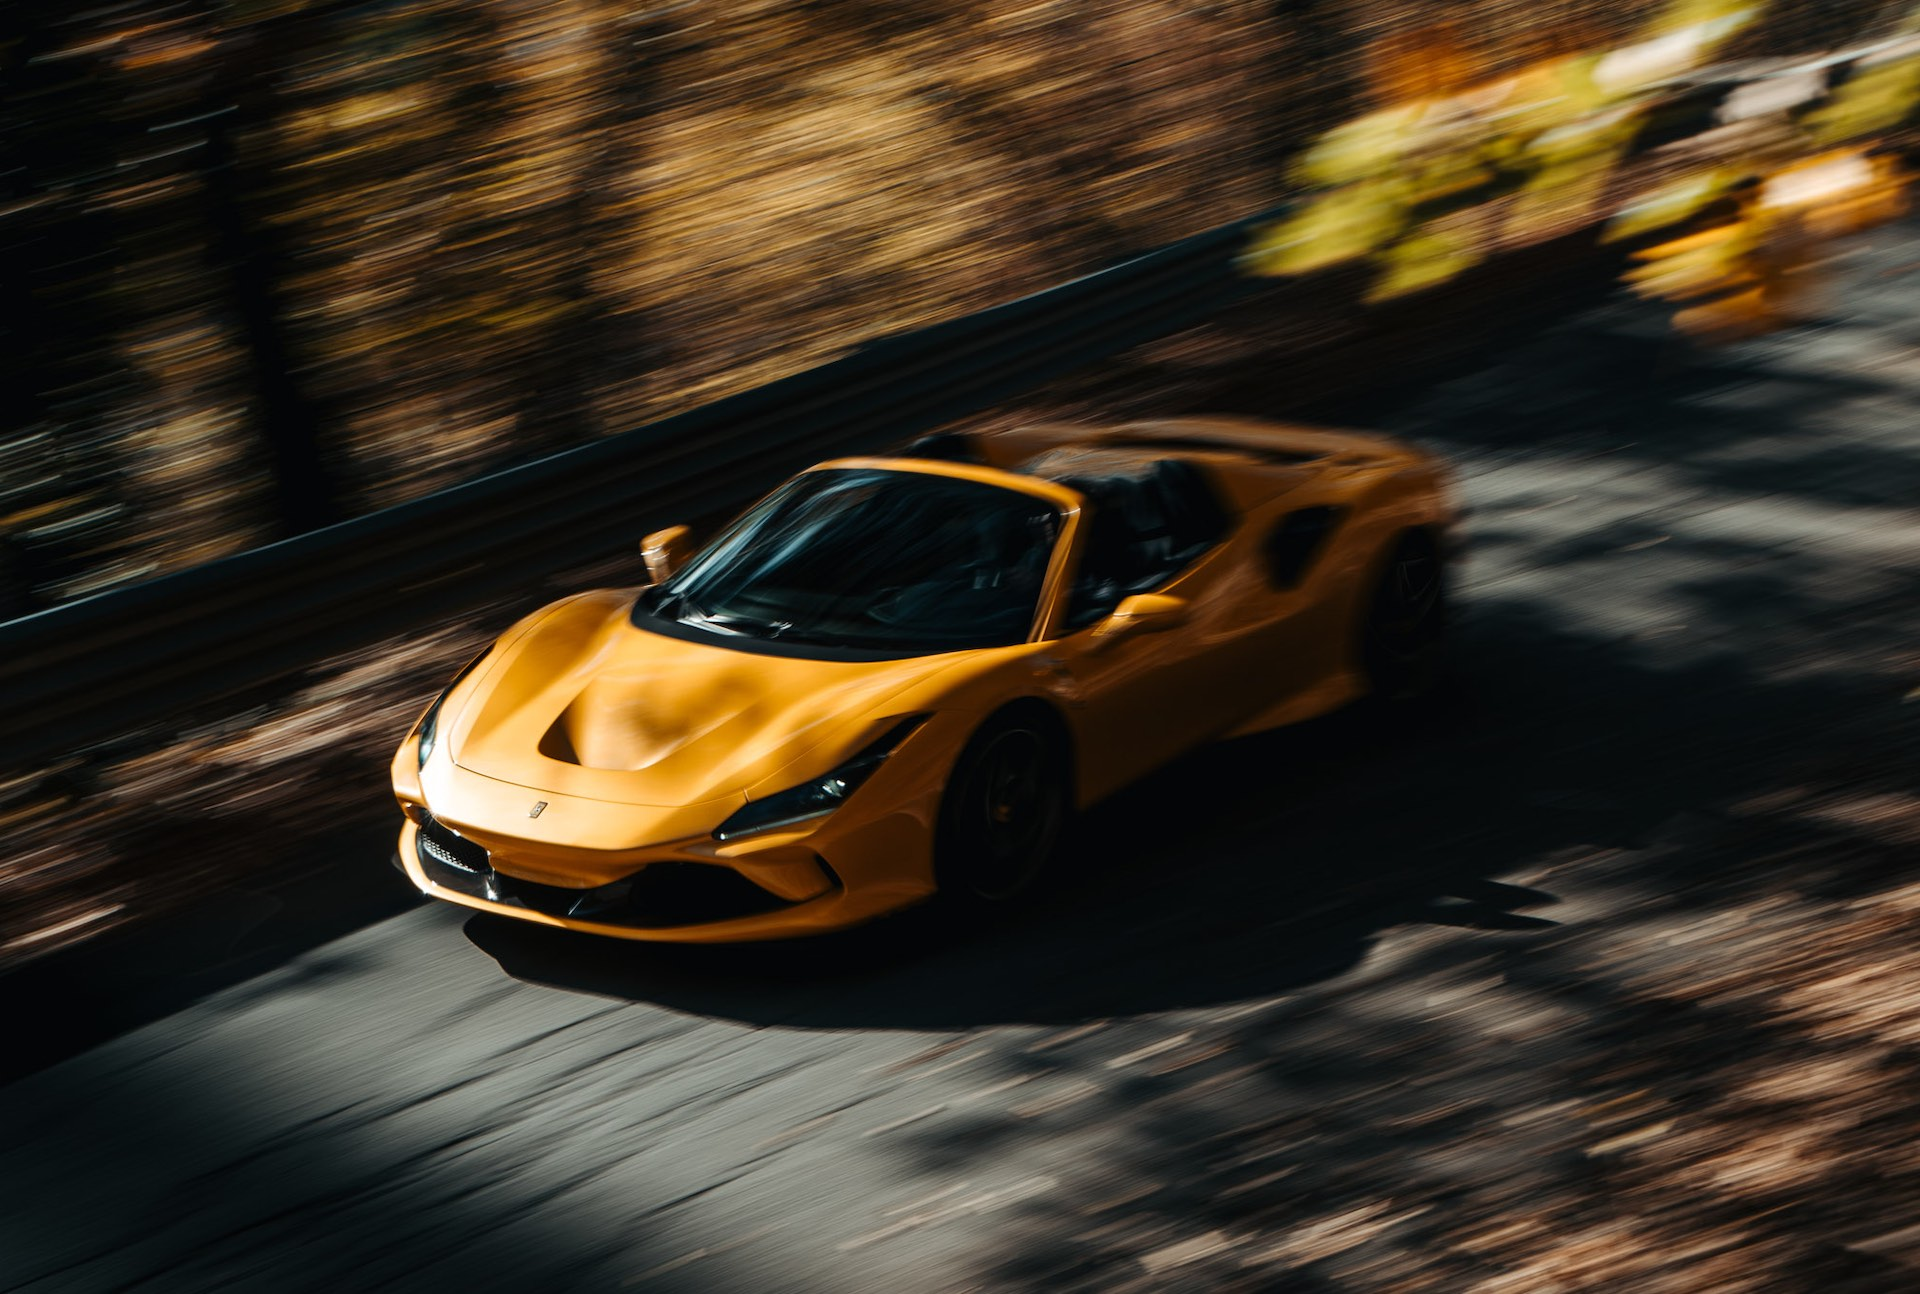 Ferrari F8 Spider Review – Roofless Driving Perfection